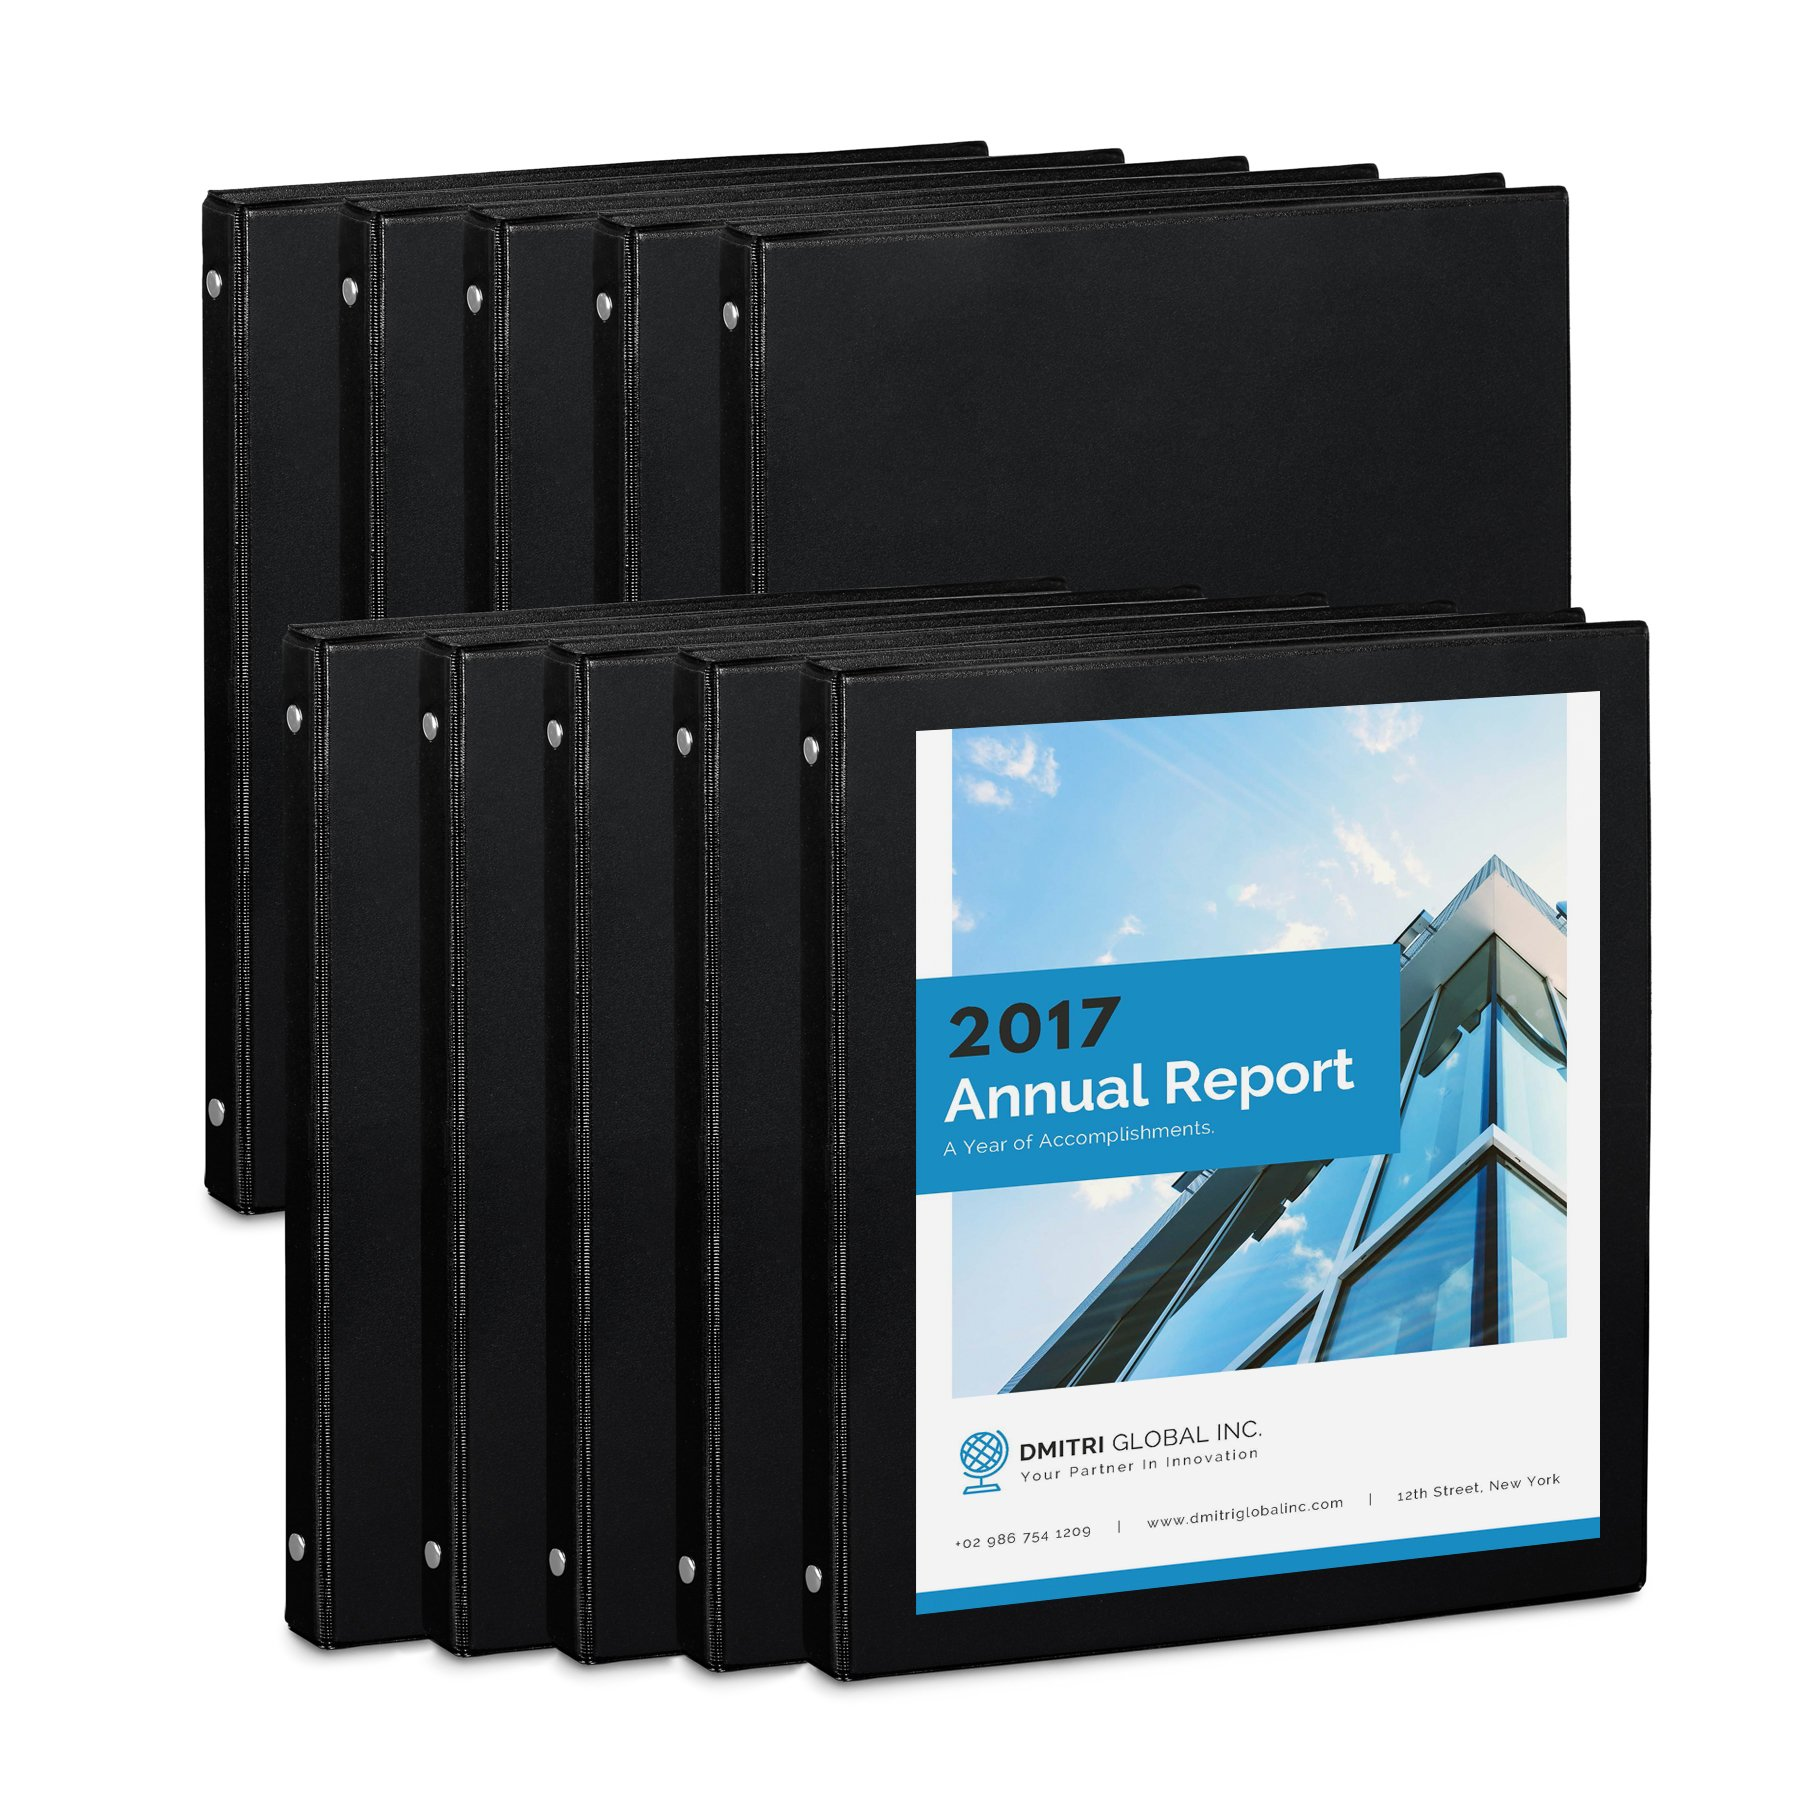 Blue Summit Supplies 10 Pack of 1/2 inch 3-Ring Economy Binders, Black, Bulk Clear Cover Binders for Home, Office, and School, 8 1/2 inch x 11 inch Paper, Value Pack